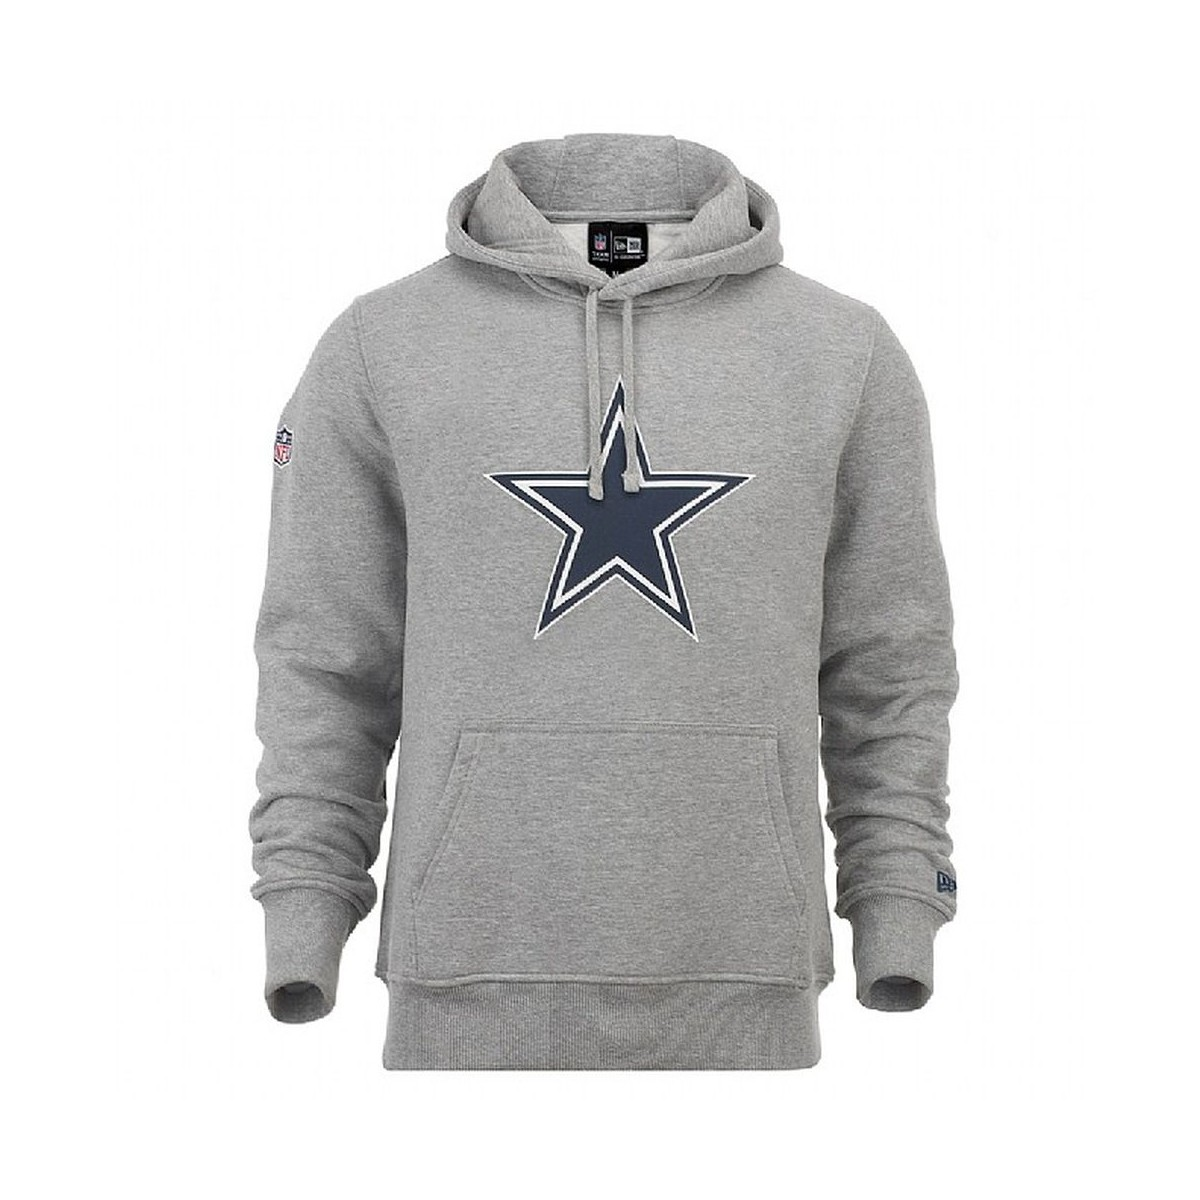 informazioni per 3c022 ab1e7 FELPA NEW ERA TEAM LOGO PO NFL DALLAS COWBOYS FELPE APPAREL ...